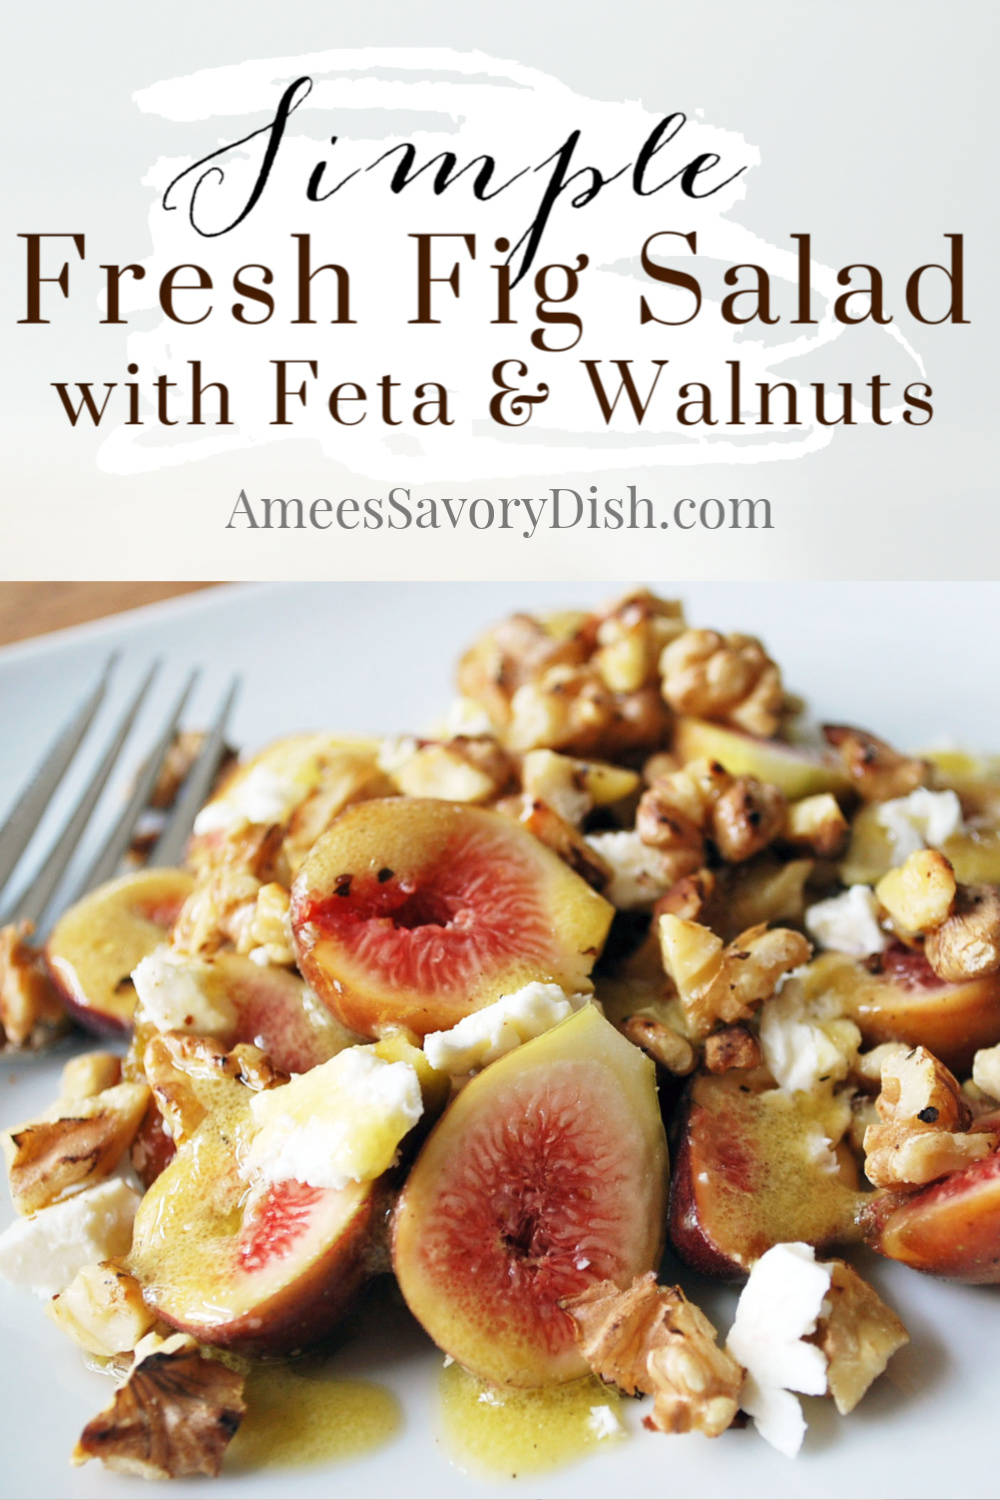 A simple and delicious fig salad recipe made with crumbled feta cheese, toasted walnuts and tossed with a dijon vinaigrette.  This easy side salad is the perfect way to enjoy ripe fresh figs! via @Ameessavorydish